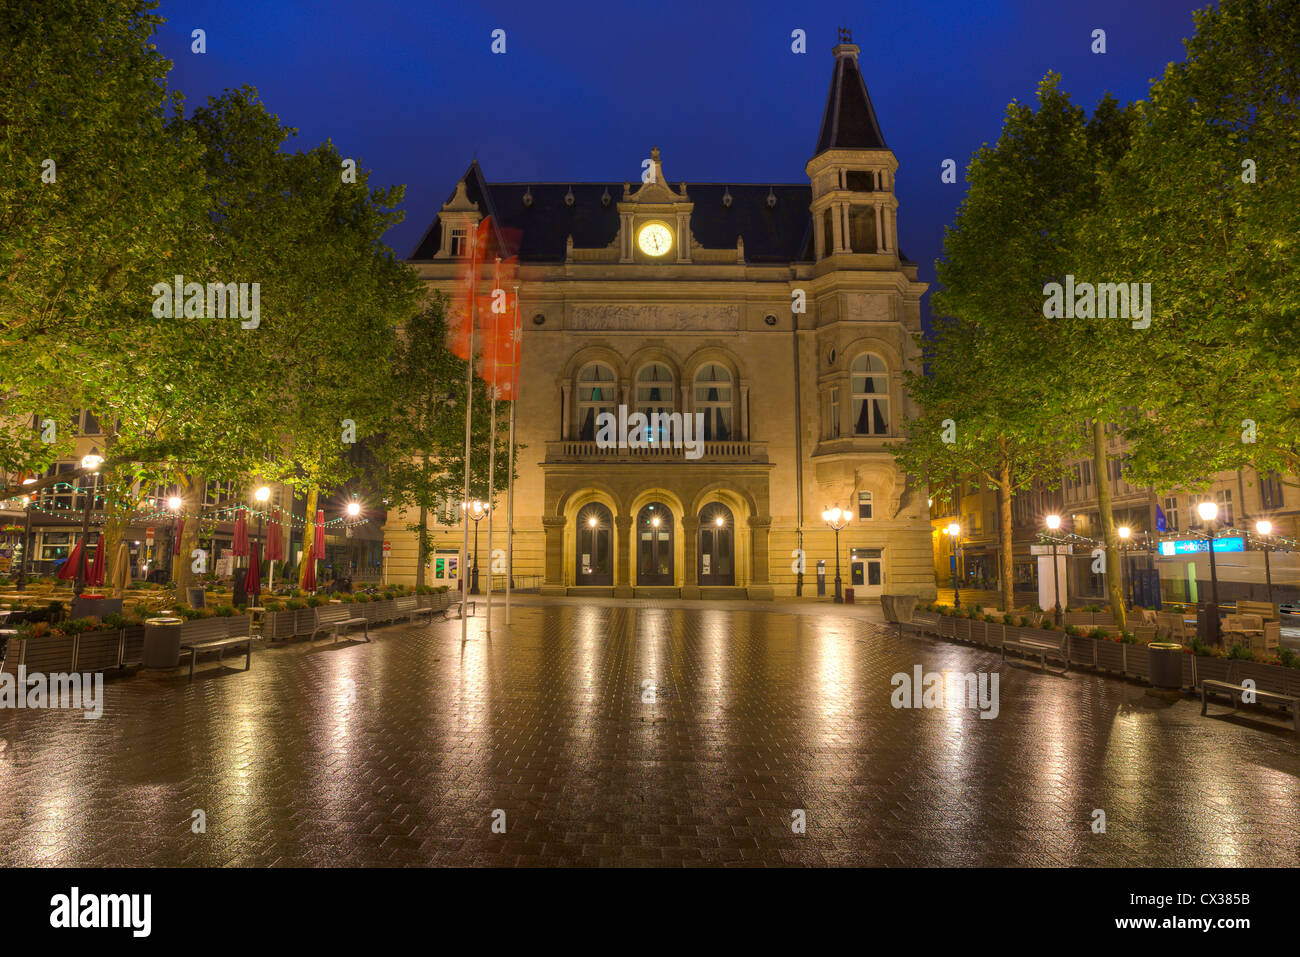 Luxembourg City - Place d'Armes and Cercle Municipal at night. - Stock Image